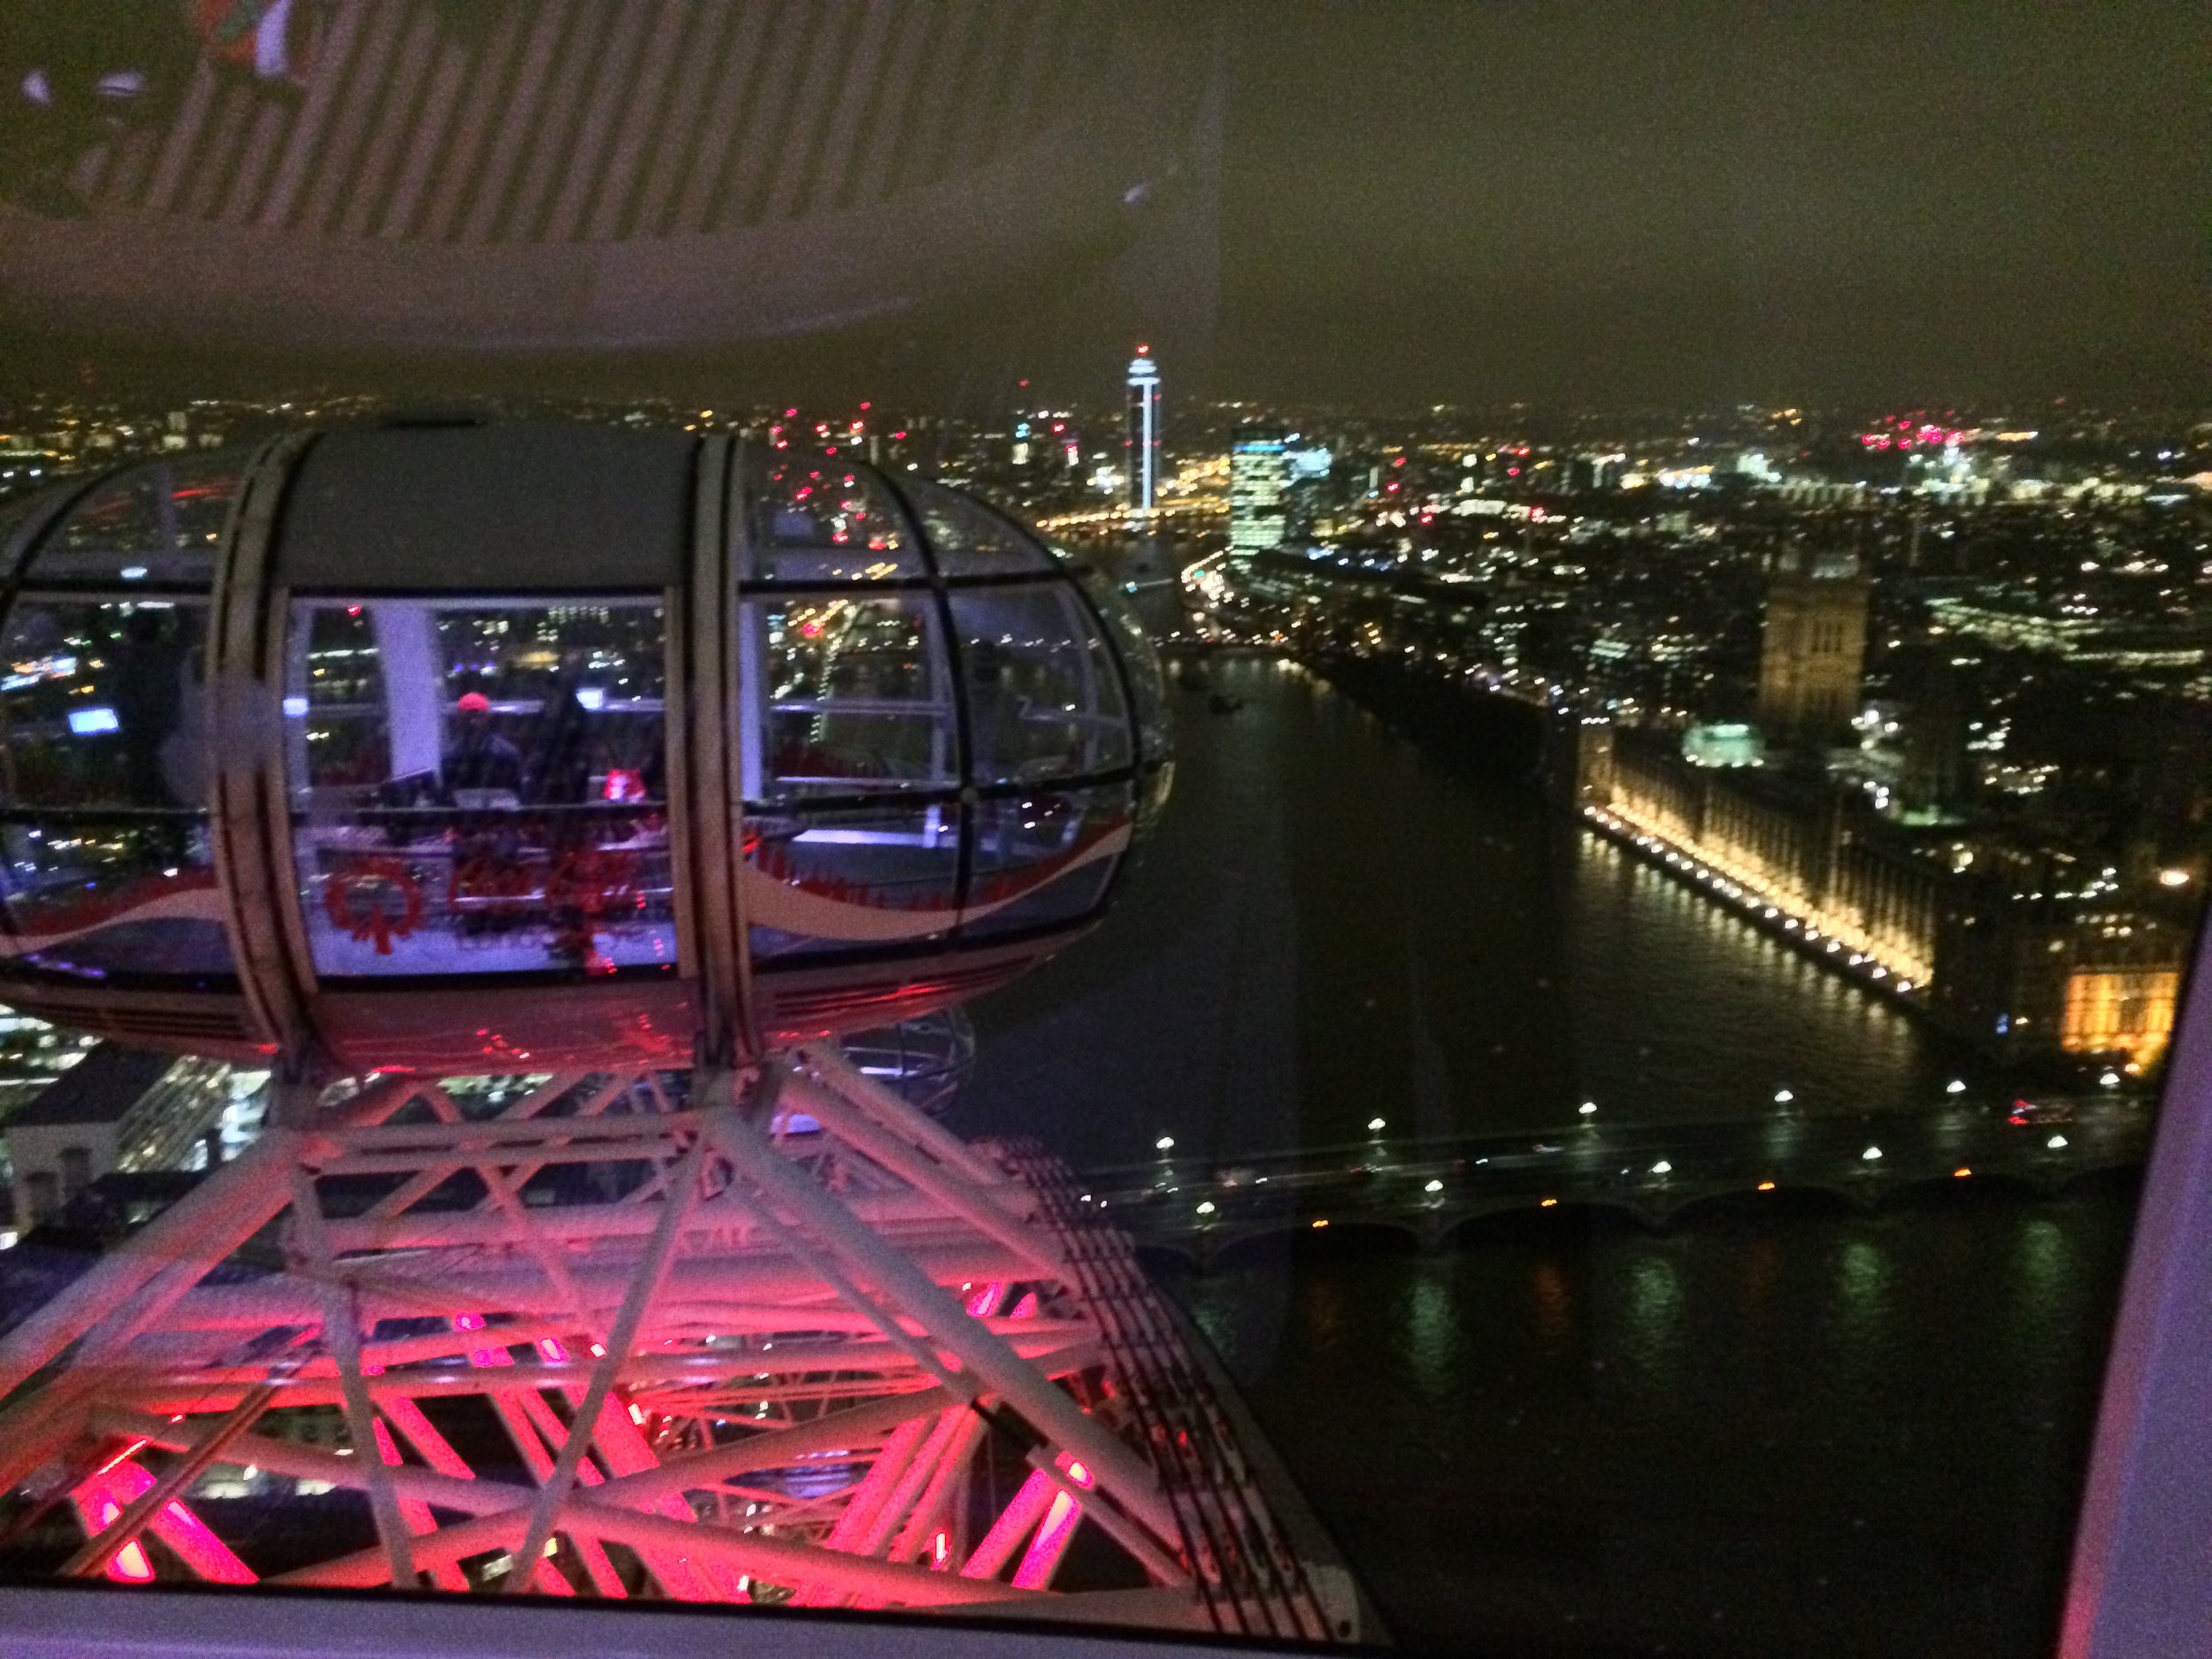 Each capsule of the Eye has great views, and moves gradually along the wheel.